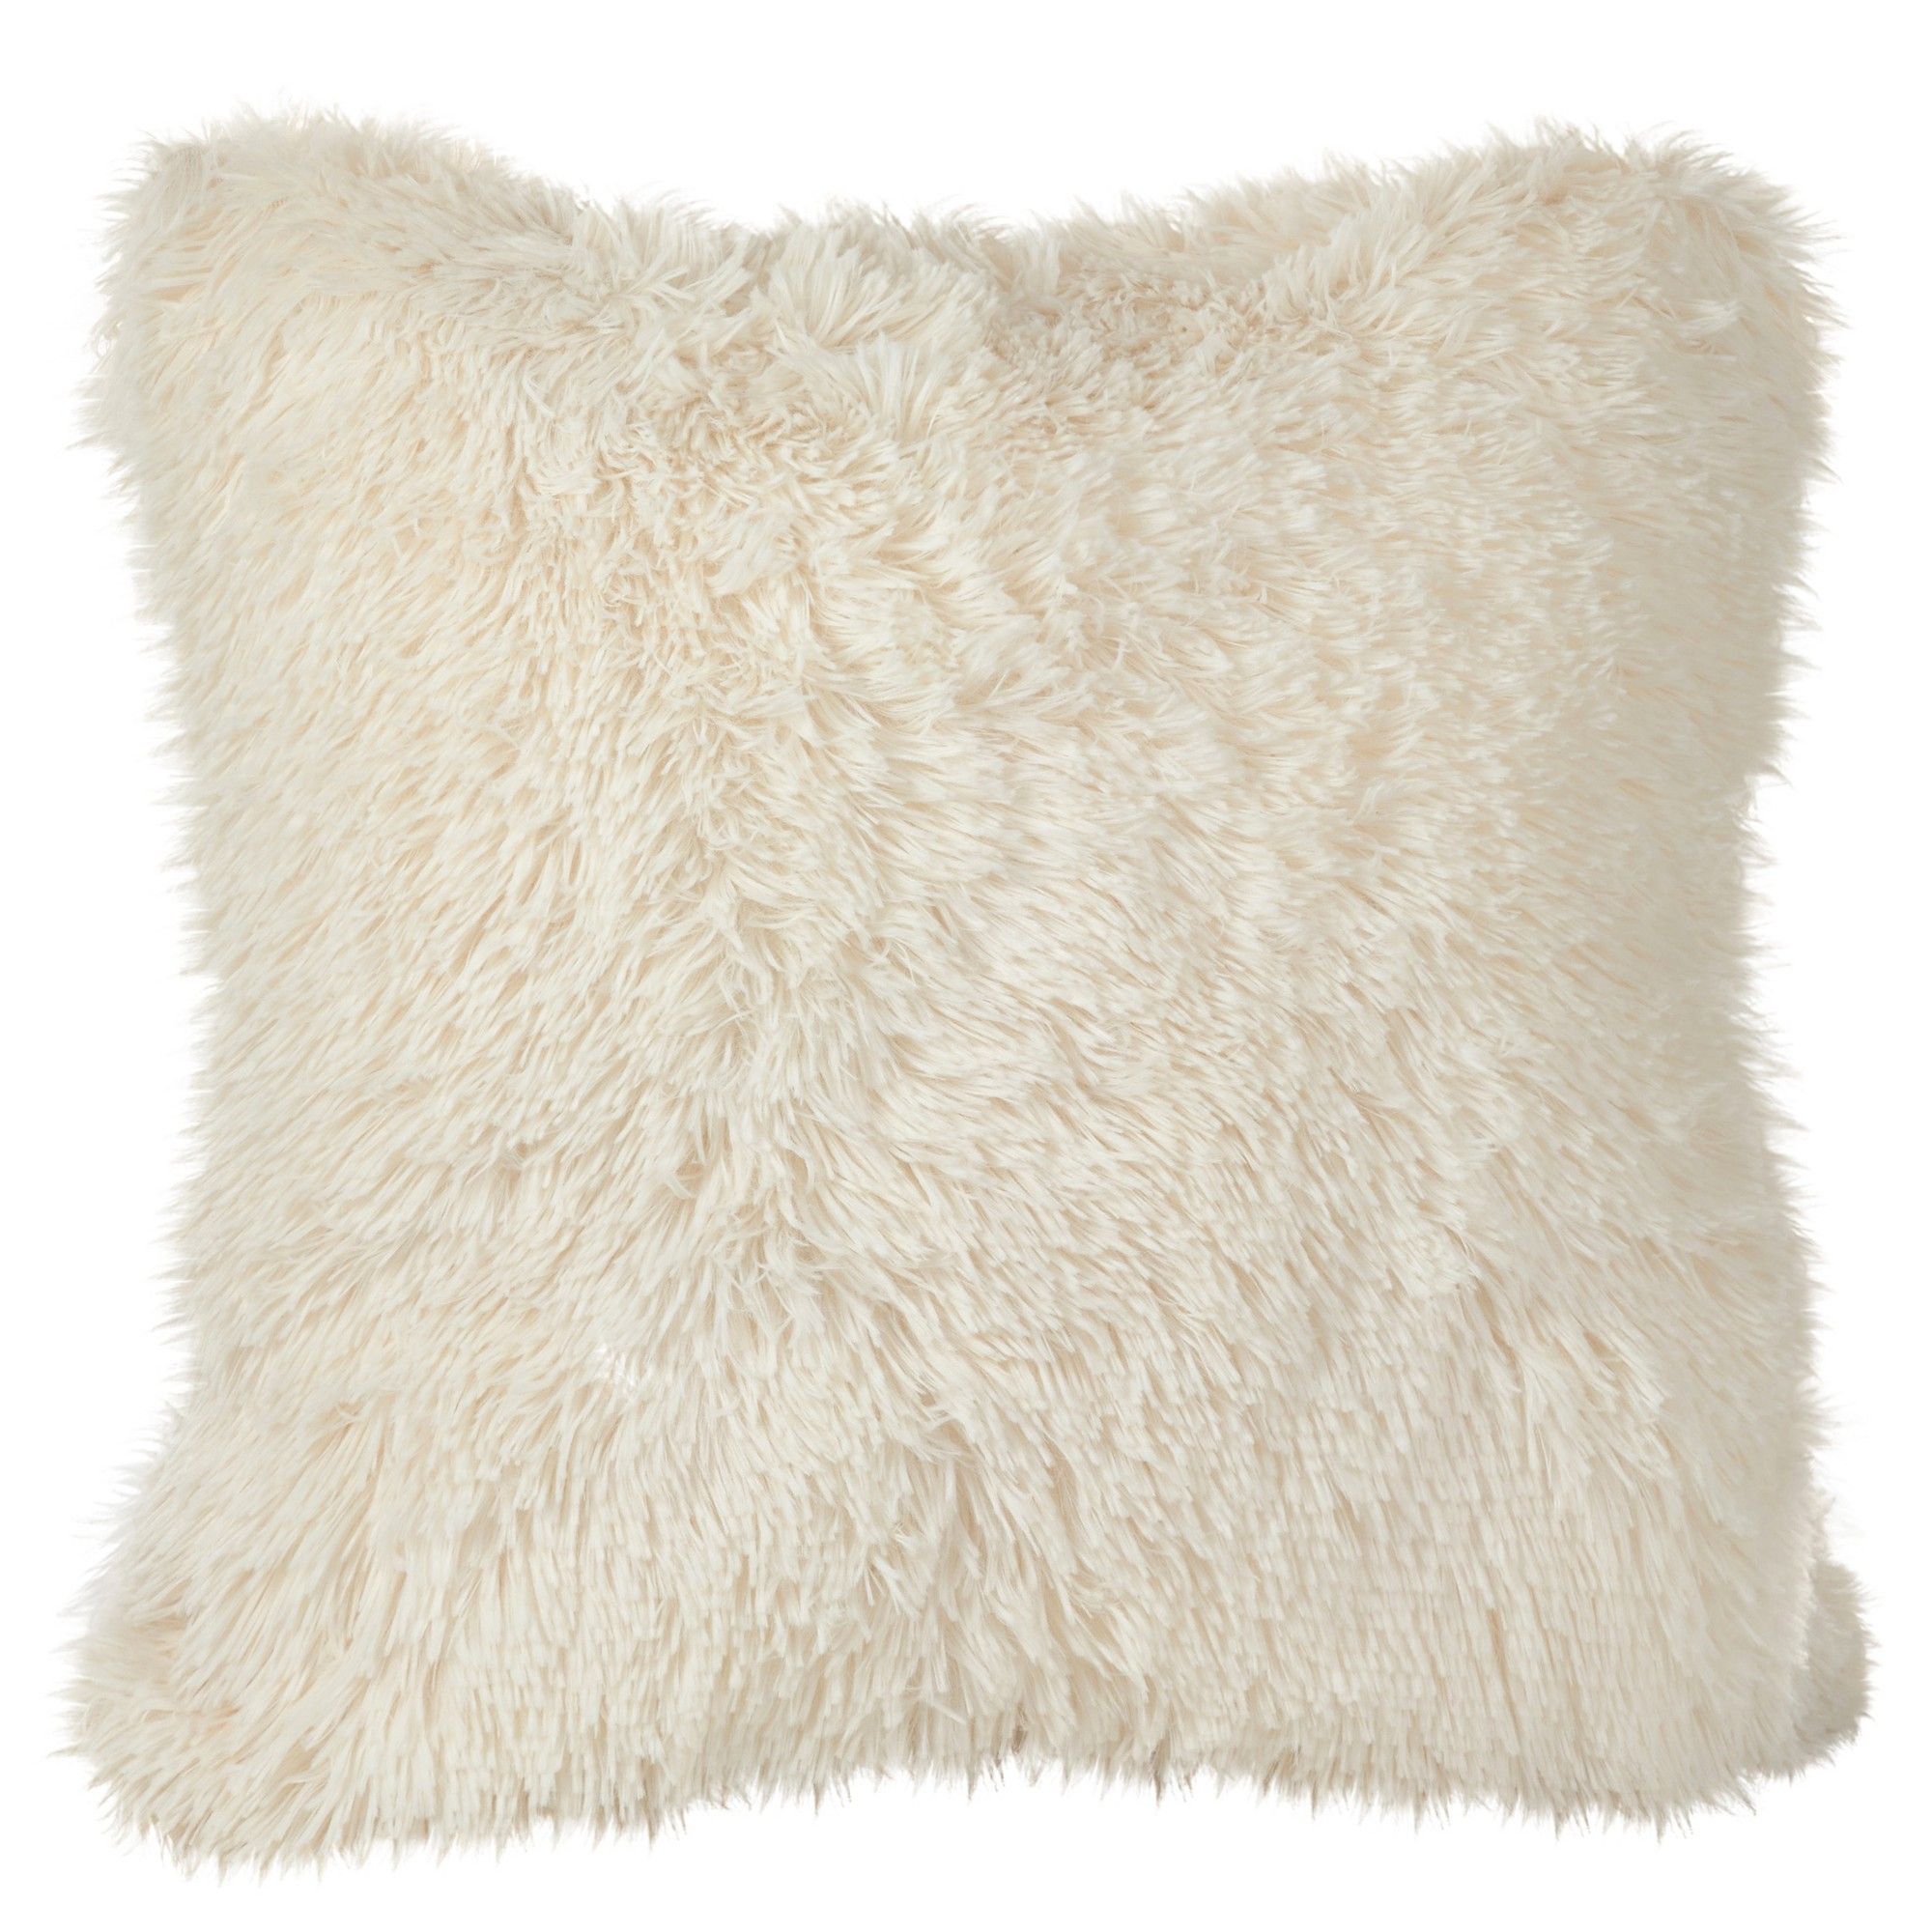 your bed lovely fur square decor accent interior cool pillows faux for fabulous pillow blush furry tips